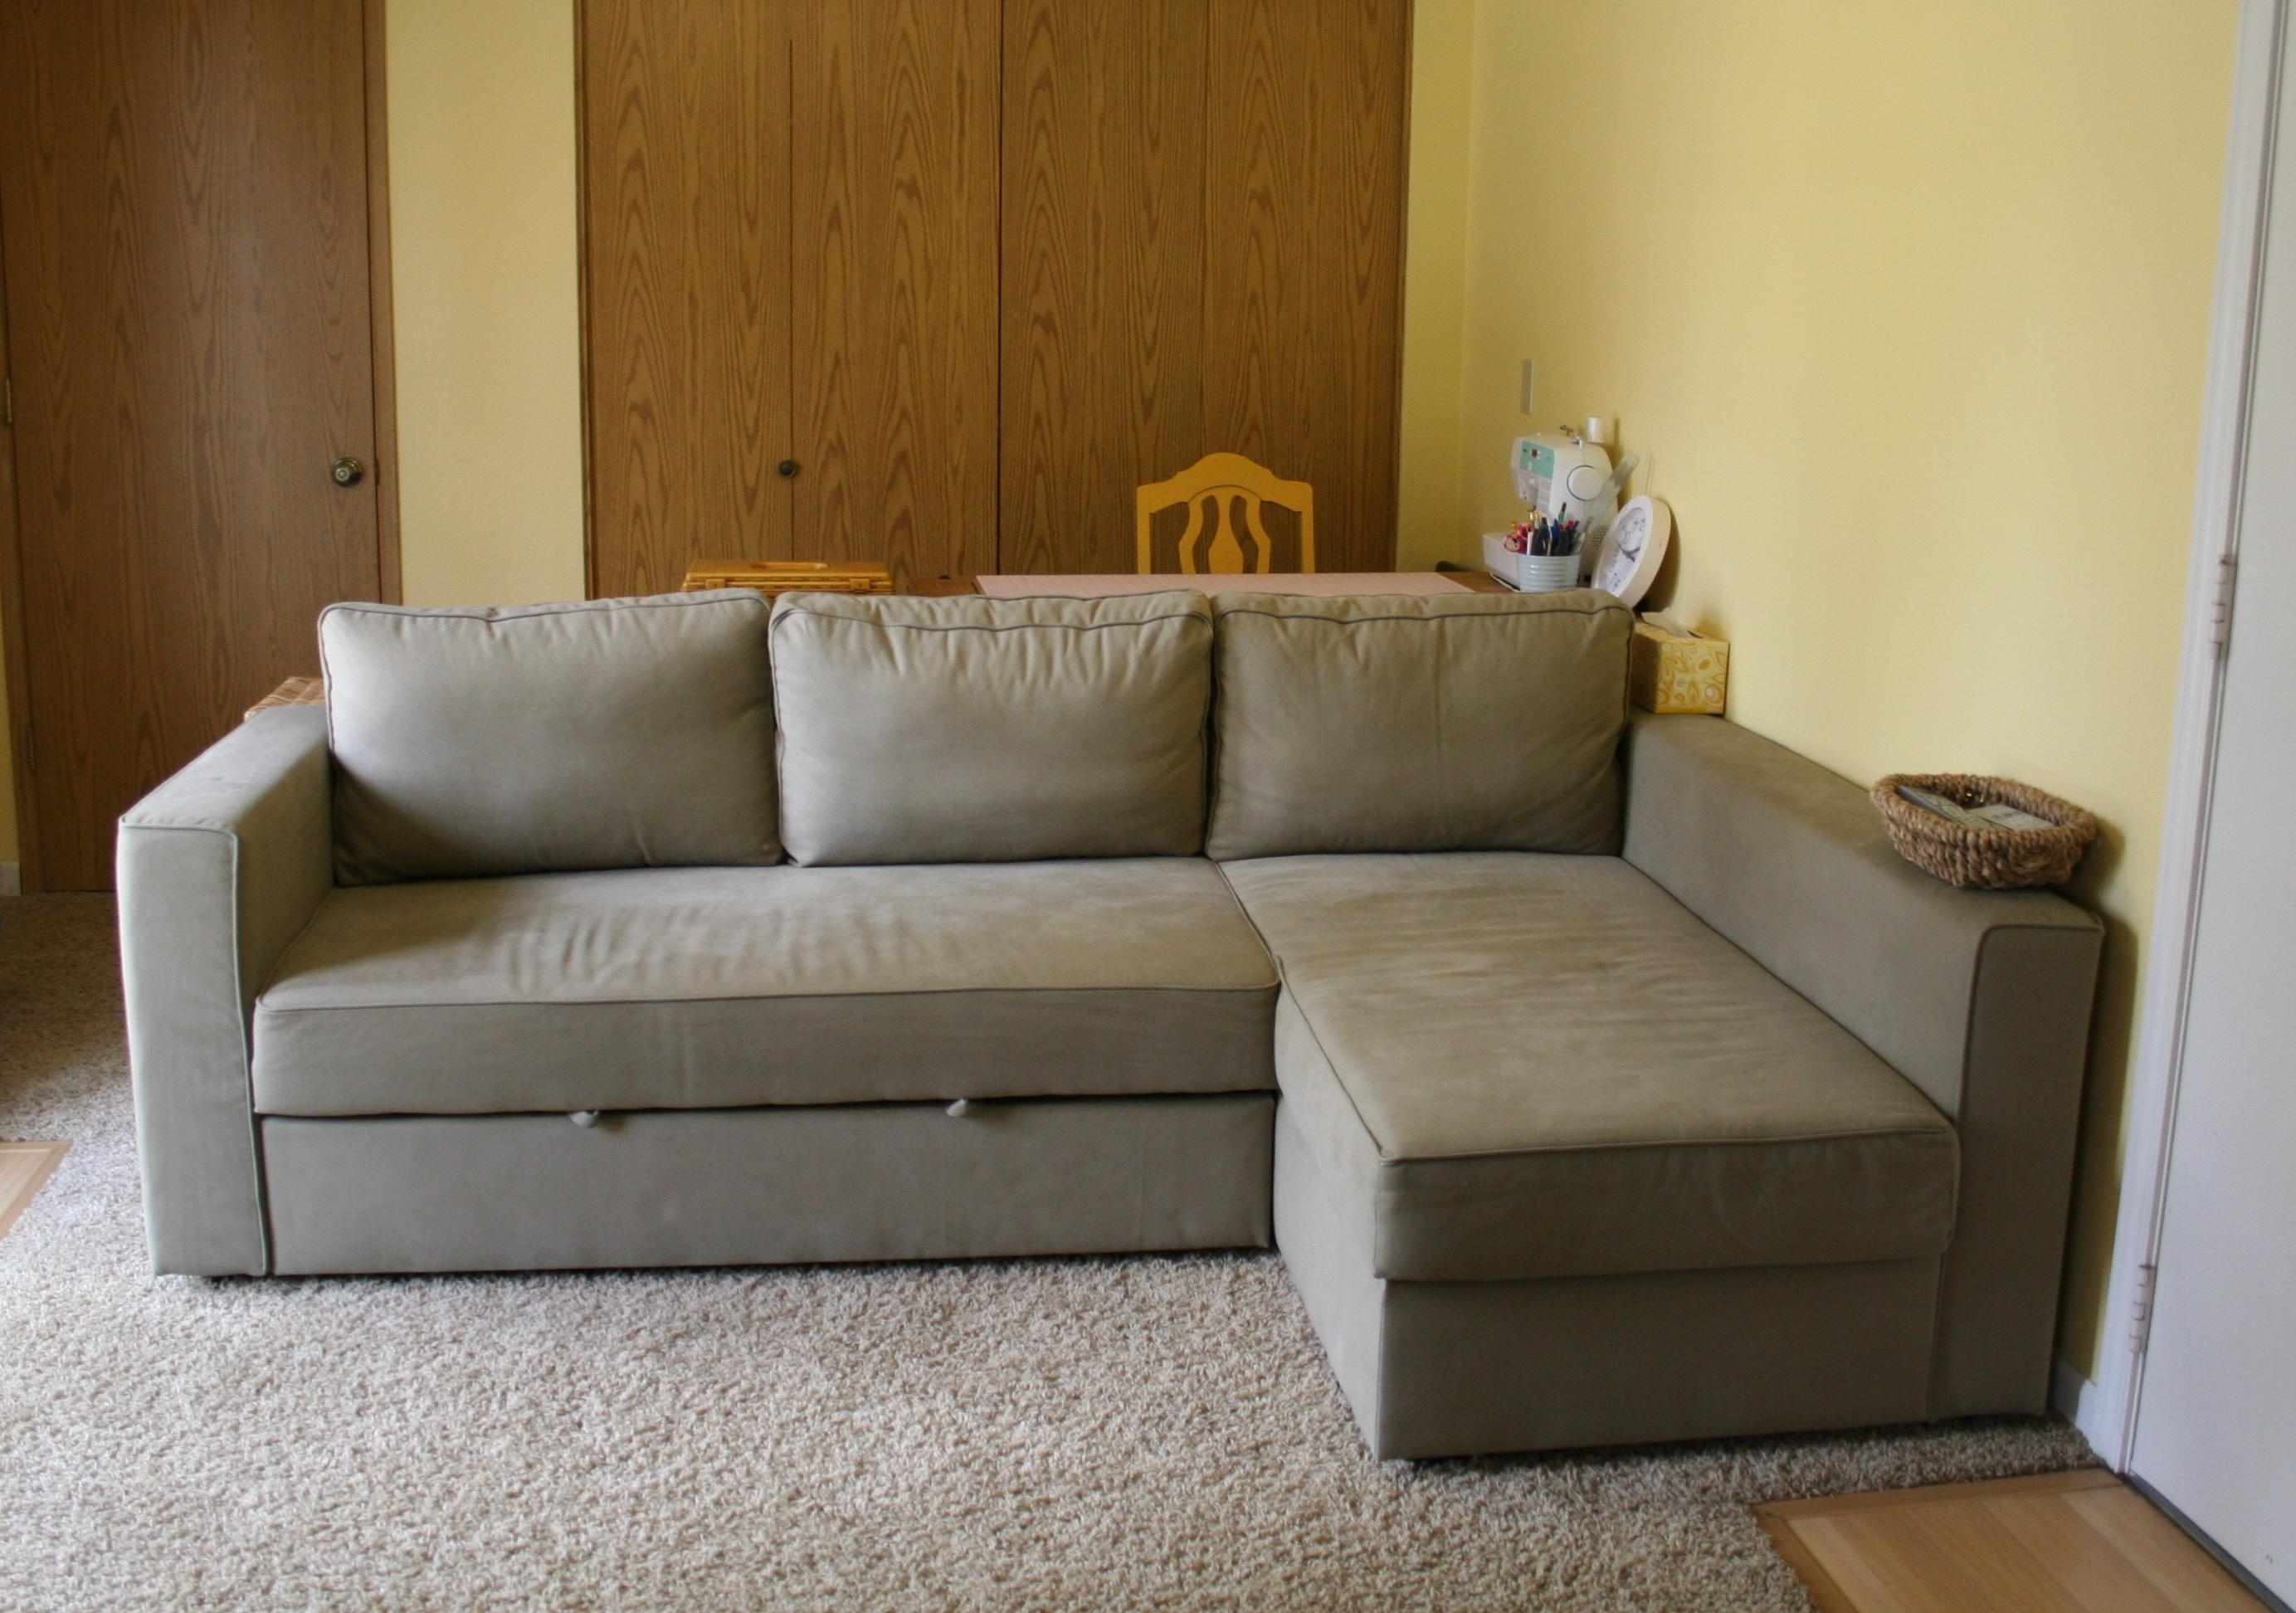 Grey Sectional Sofas Ikea | Tehranmix Decoration Intended For Ikea Sectional Sleeper Sofa (View 13 of 20)